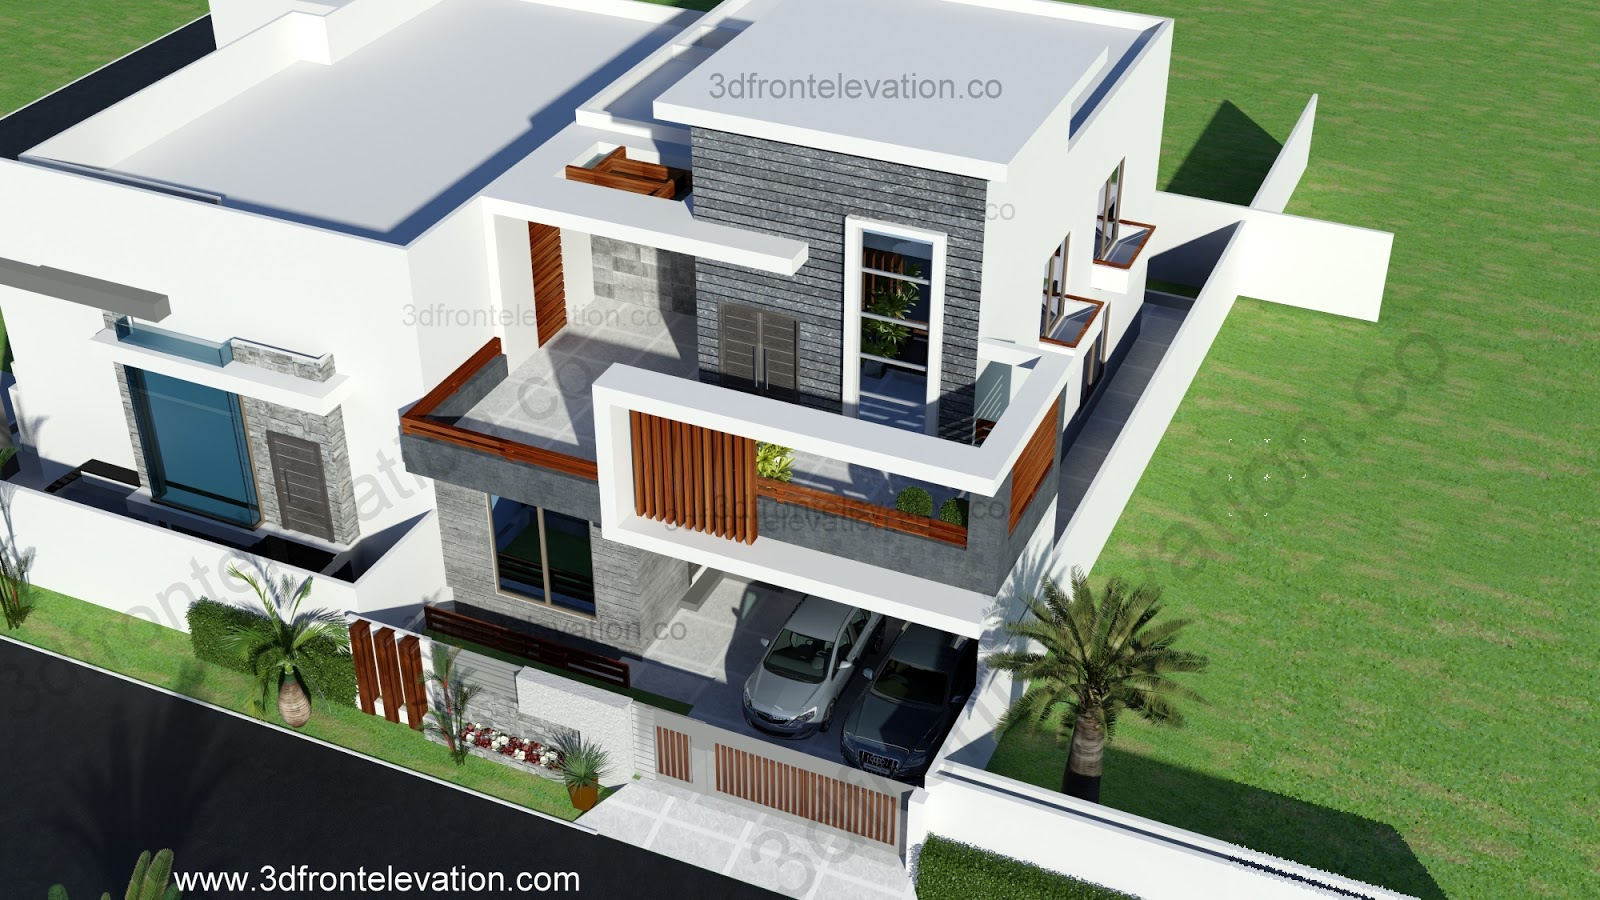 Home Design Ideas Elevation: 3D Front Elevation.com: 10 Marla Contemporary House Design